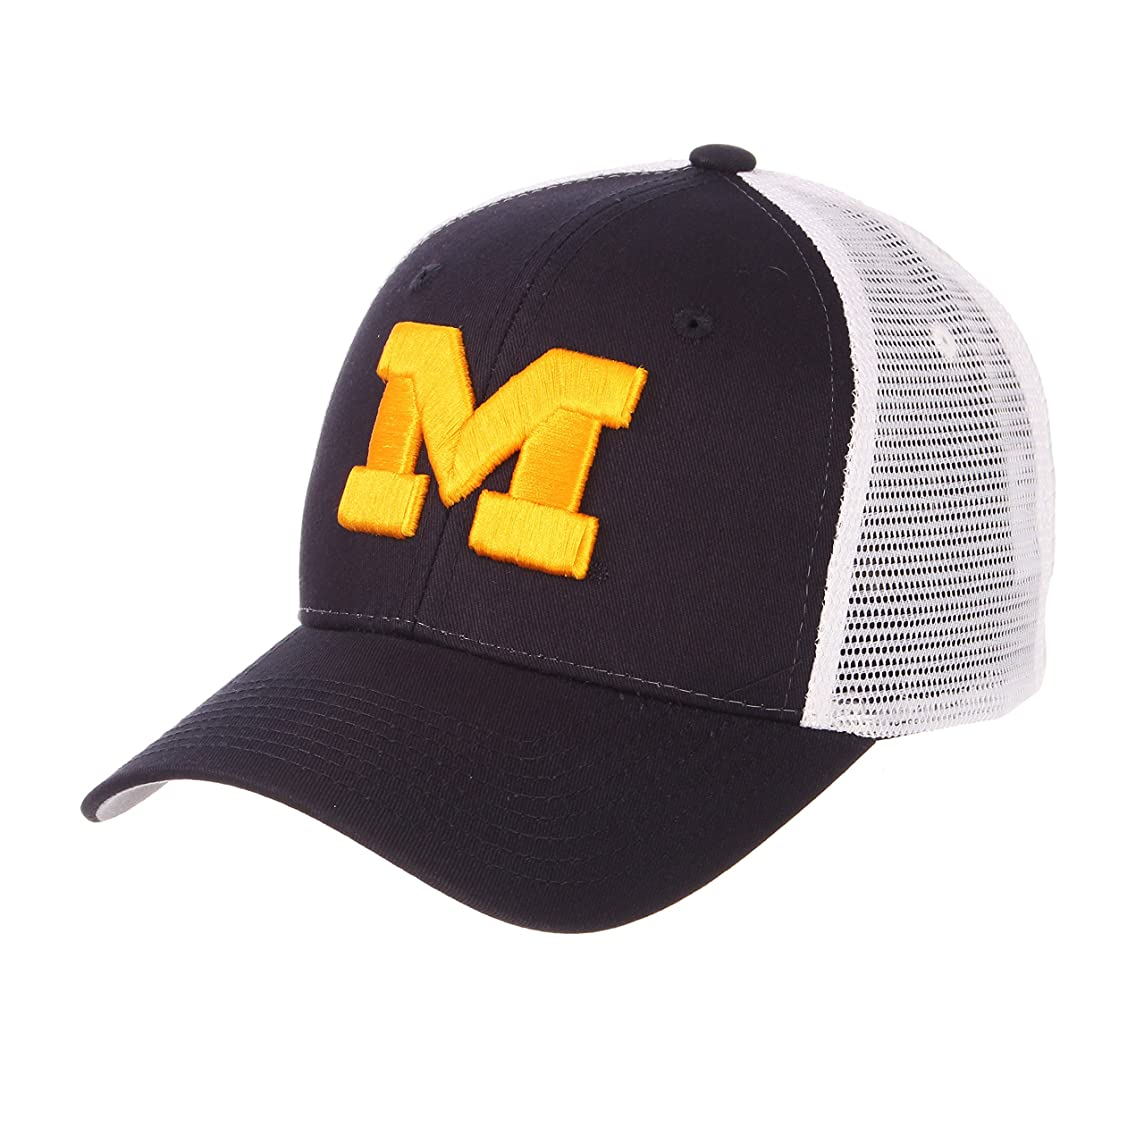 Zephyr University of Michigan Wolverines Big Blue Big Rig Best Mesh Trucker Mens/Womens/Boys Adjustable Cap/Hat